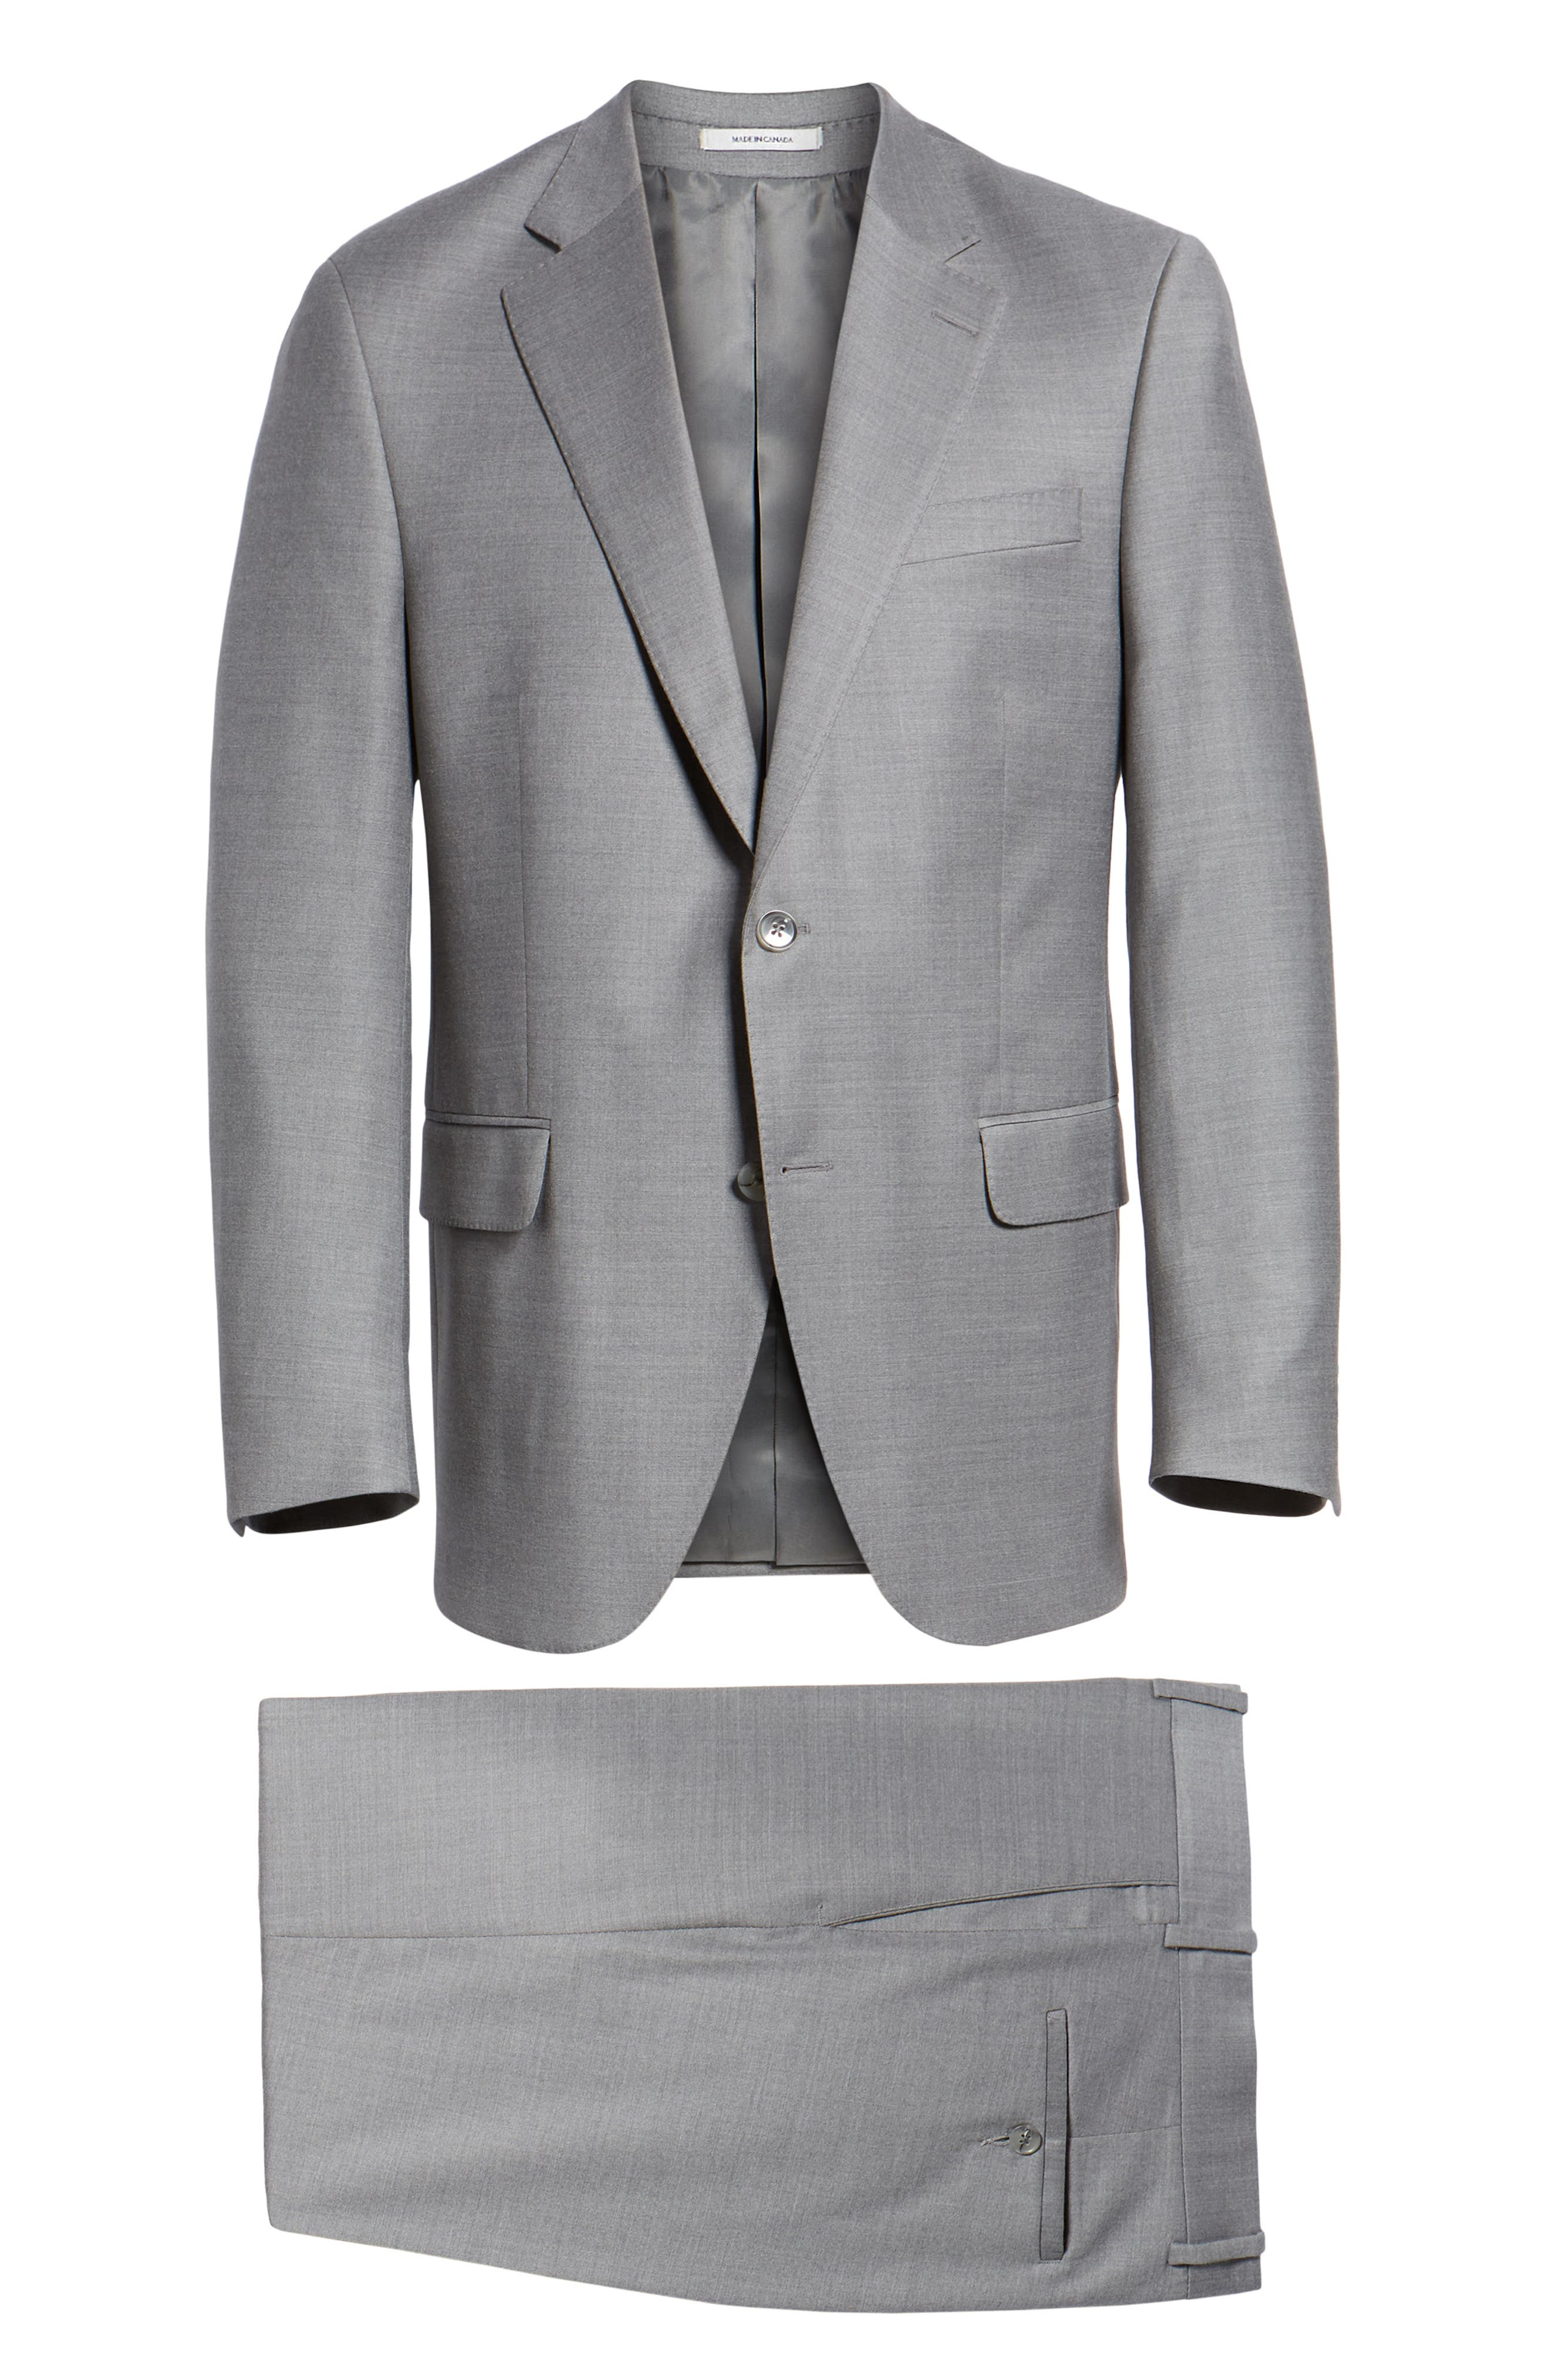 Flynn Classic Fit Solid Wool Suit,                             Alternate thumbnail 8, color,                             LIGHT GREY